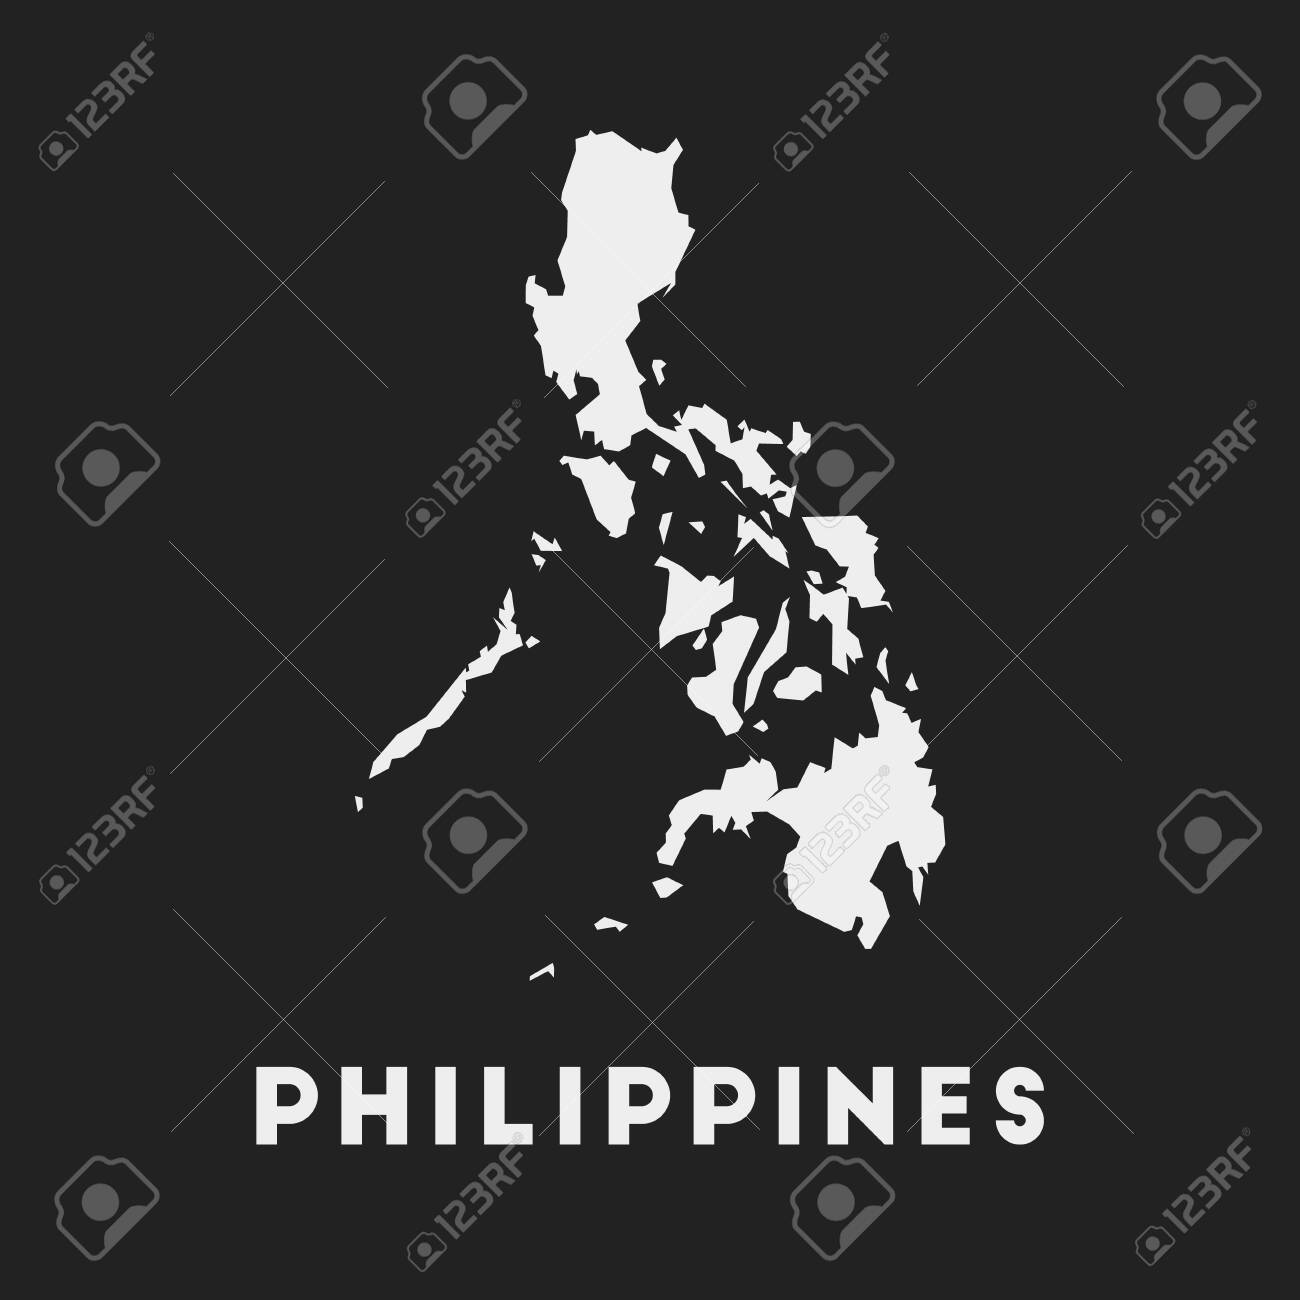 Philippines Icon Country Map On Dark Background Stylish Philippines Royalty Free Cliparts Vectors And Stock Illustration Image 136688301